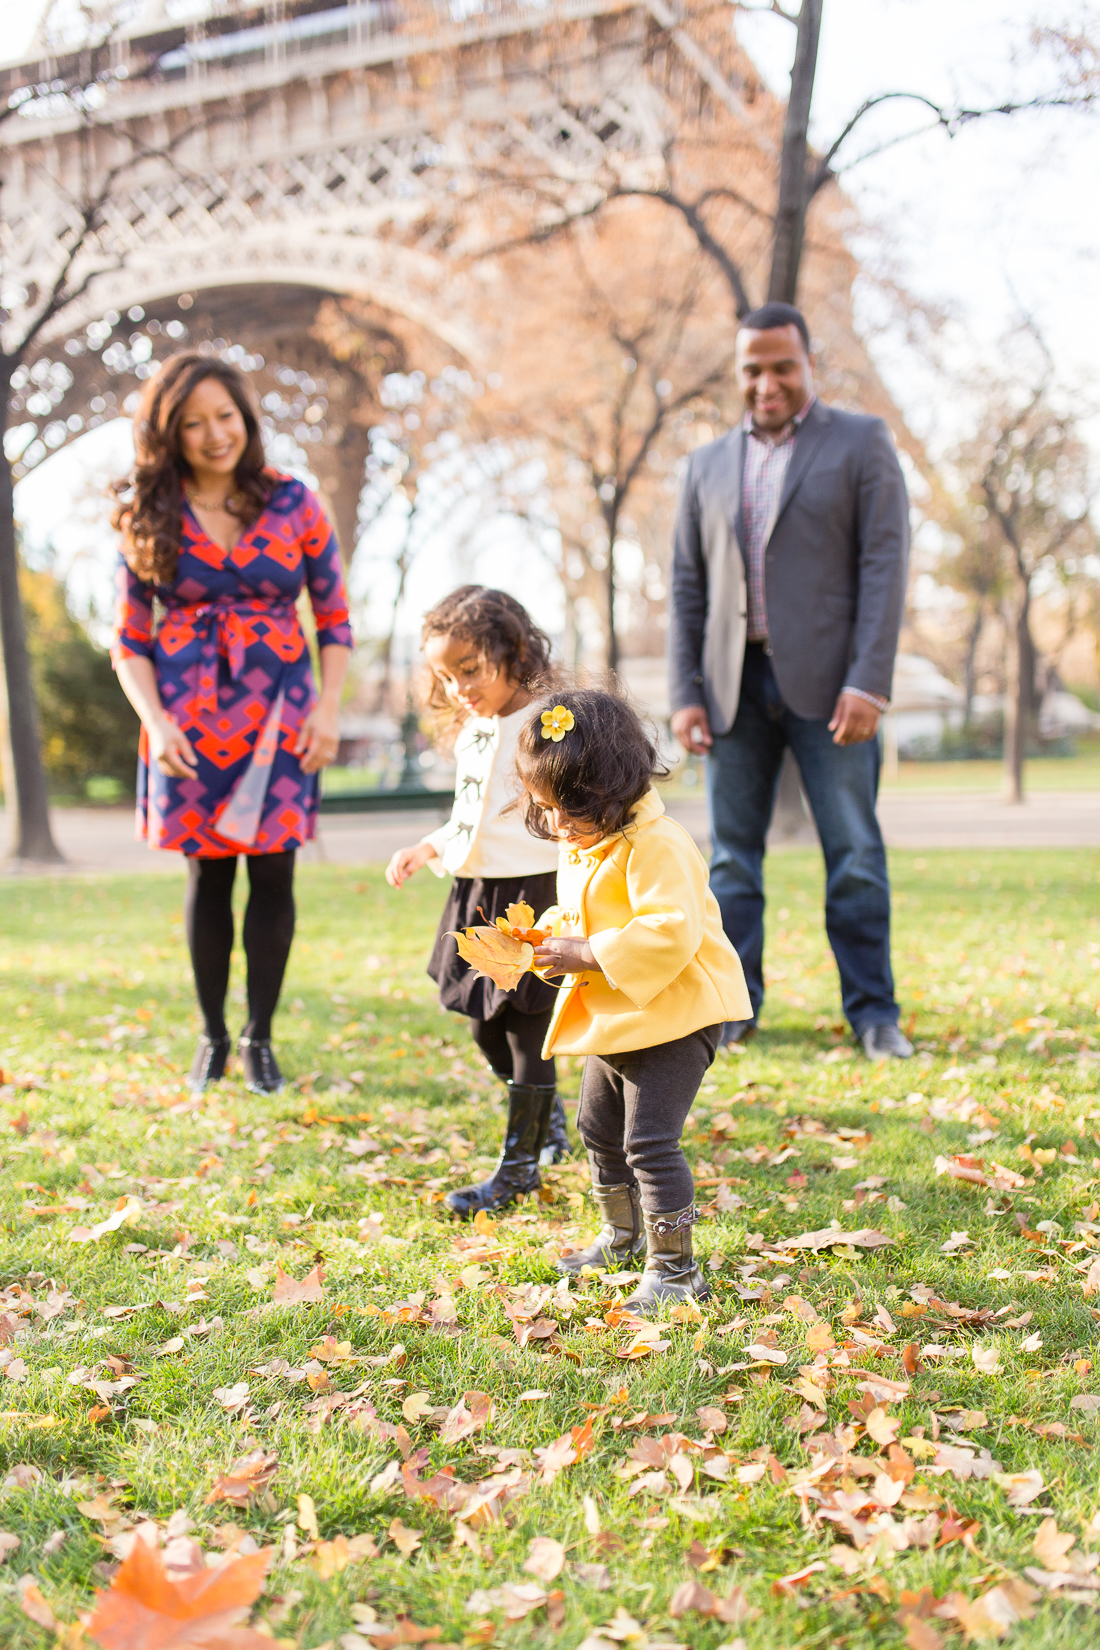 spring-fall-family-paris-eiffel-tower-photo-session-outfit-inspiratn-5